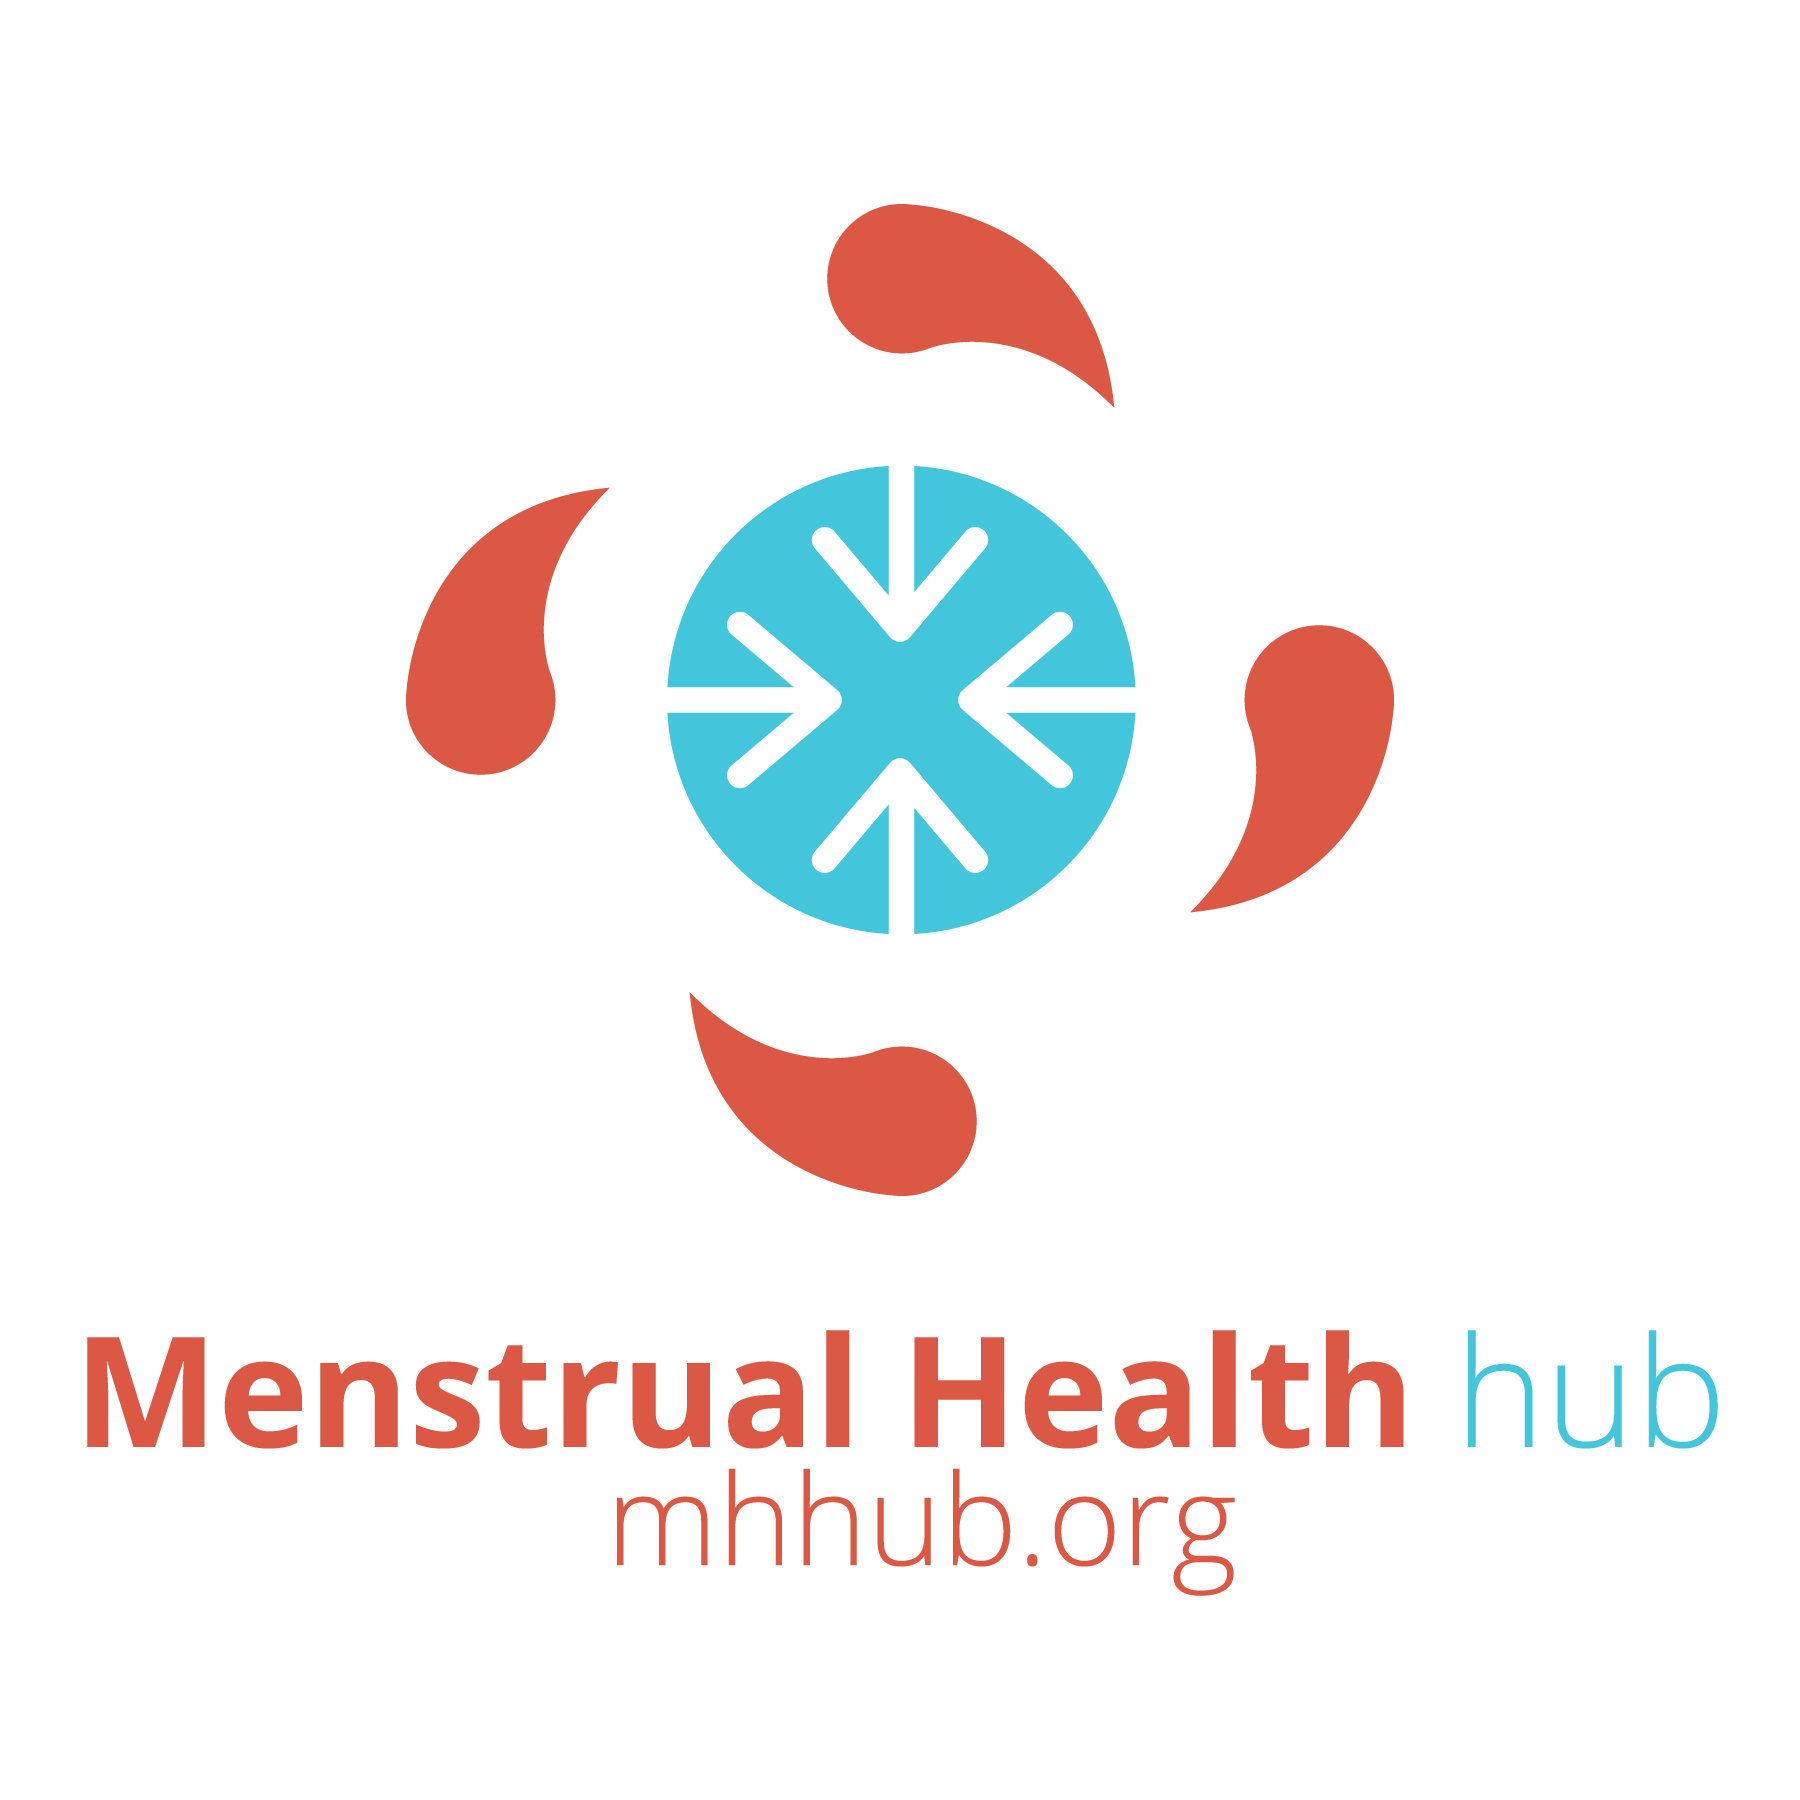 Menstrual Health Hub connects community - Society for